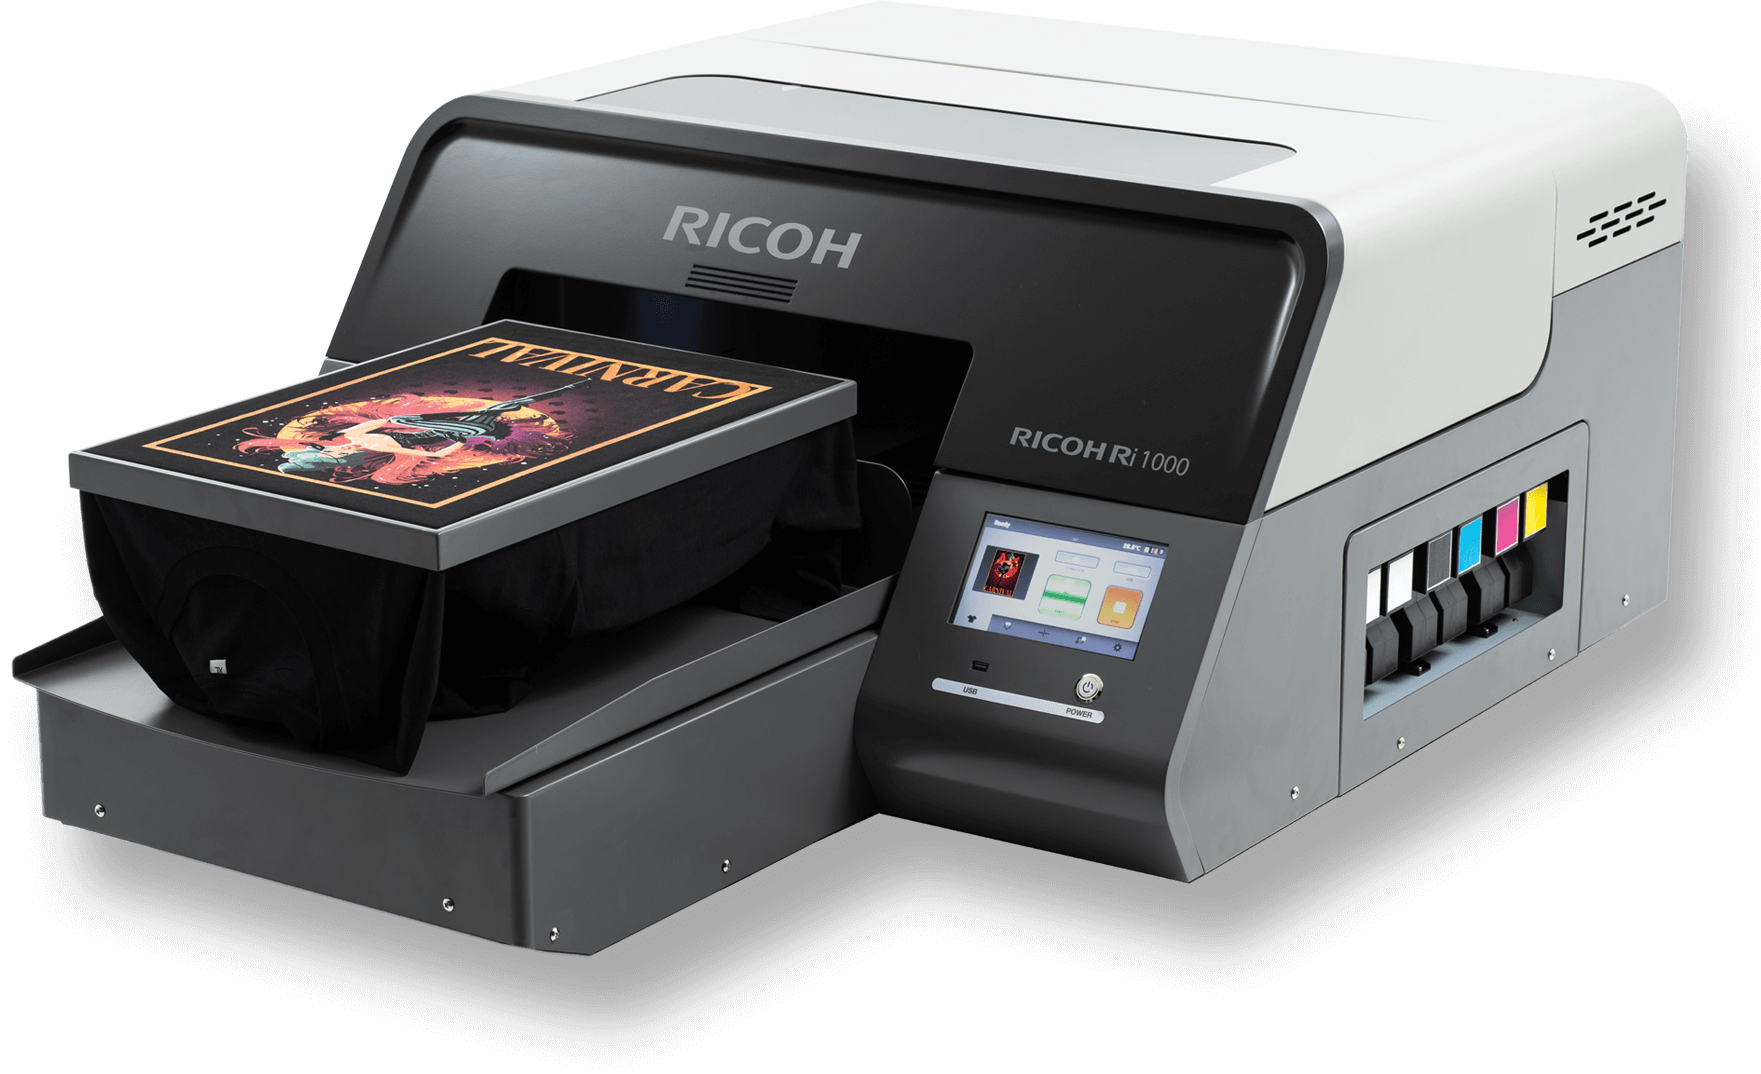 Ricoh RI 1000 Printer